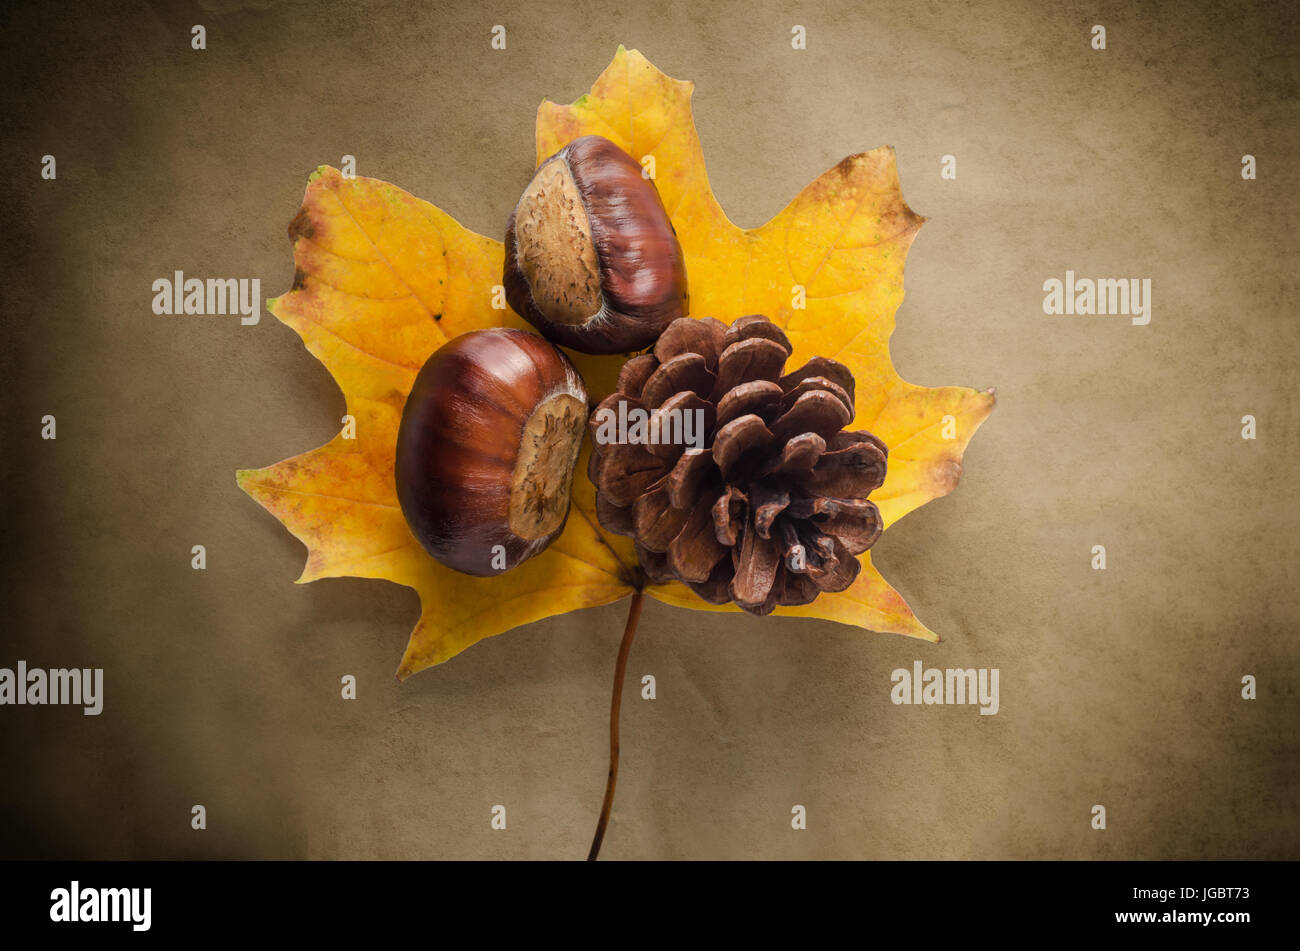 A single Sycamore leaf in Autumn (Fall) hues on antiqued, vignetted paper with conkers and fir cone. - Stock Image